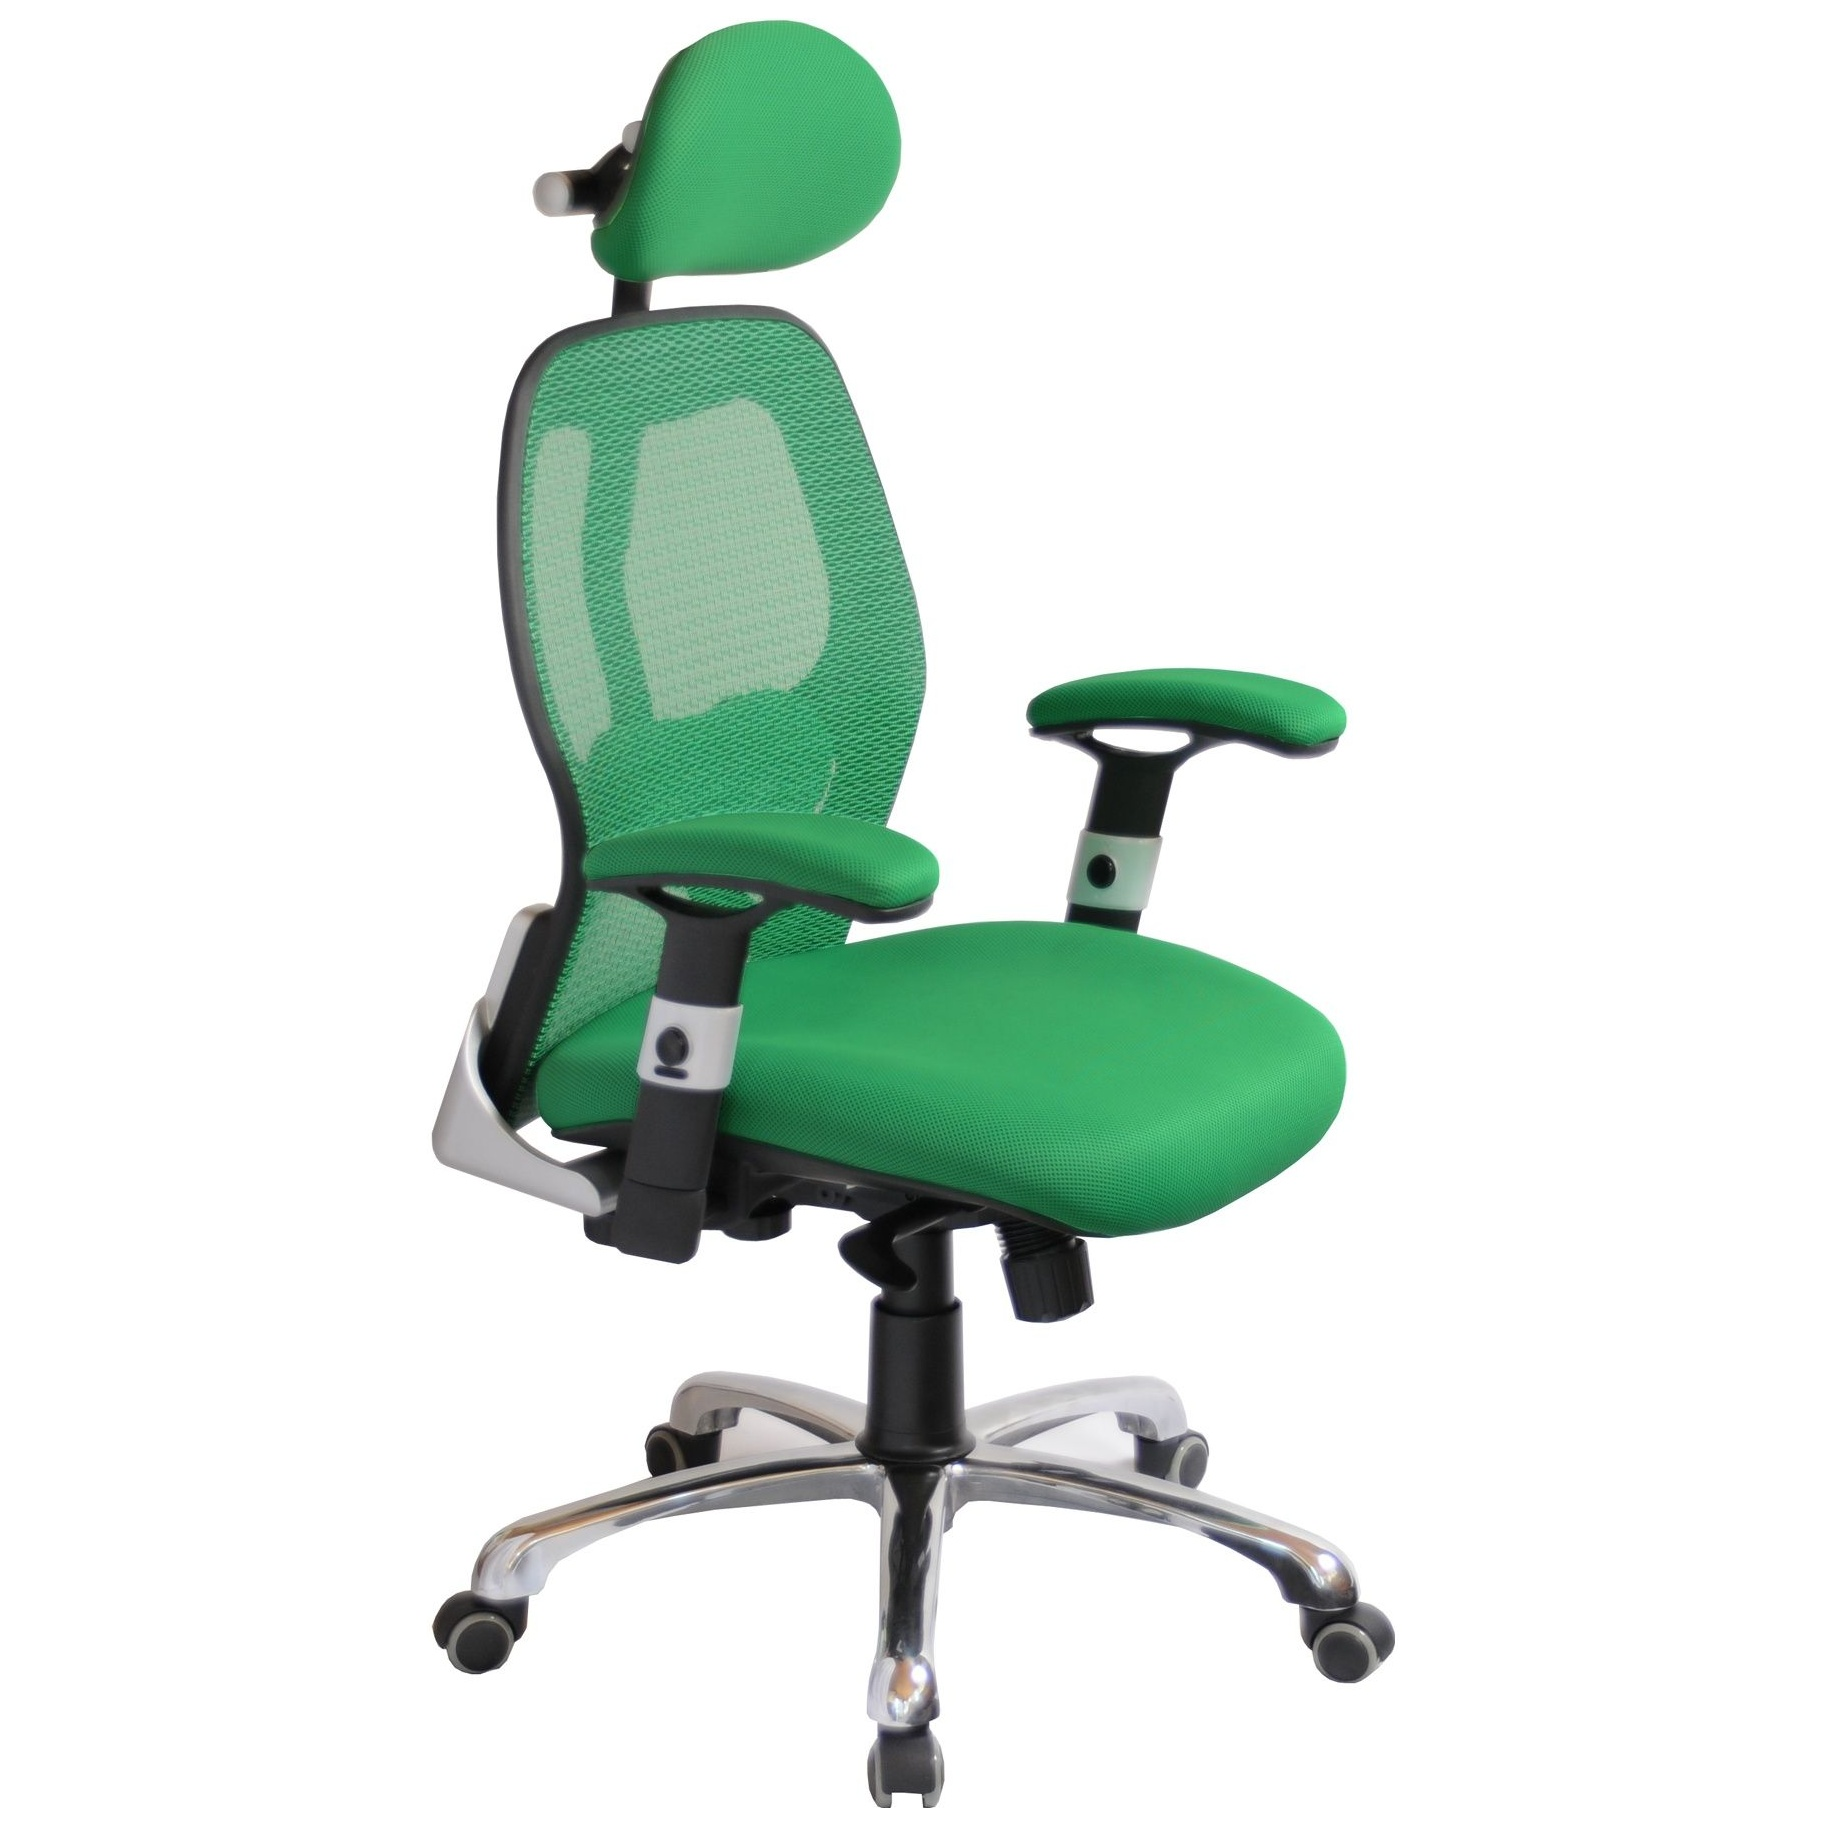 Ergo Tek Mesh Manager Chair From Our Operator Chairs Range